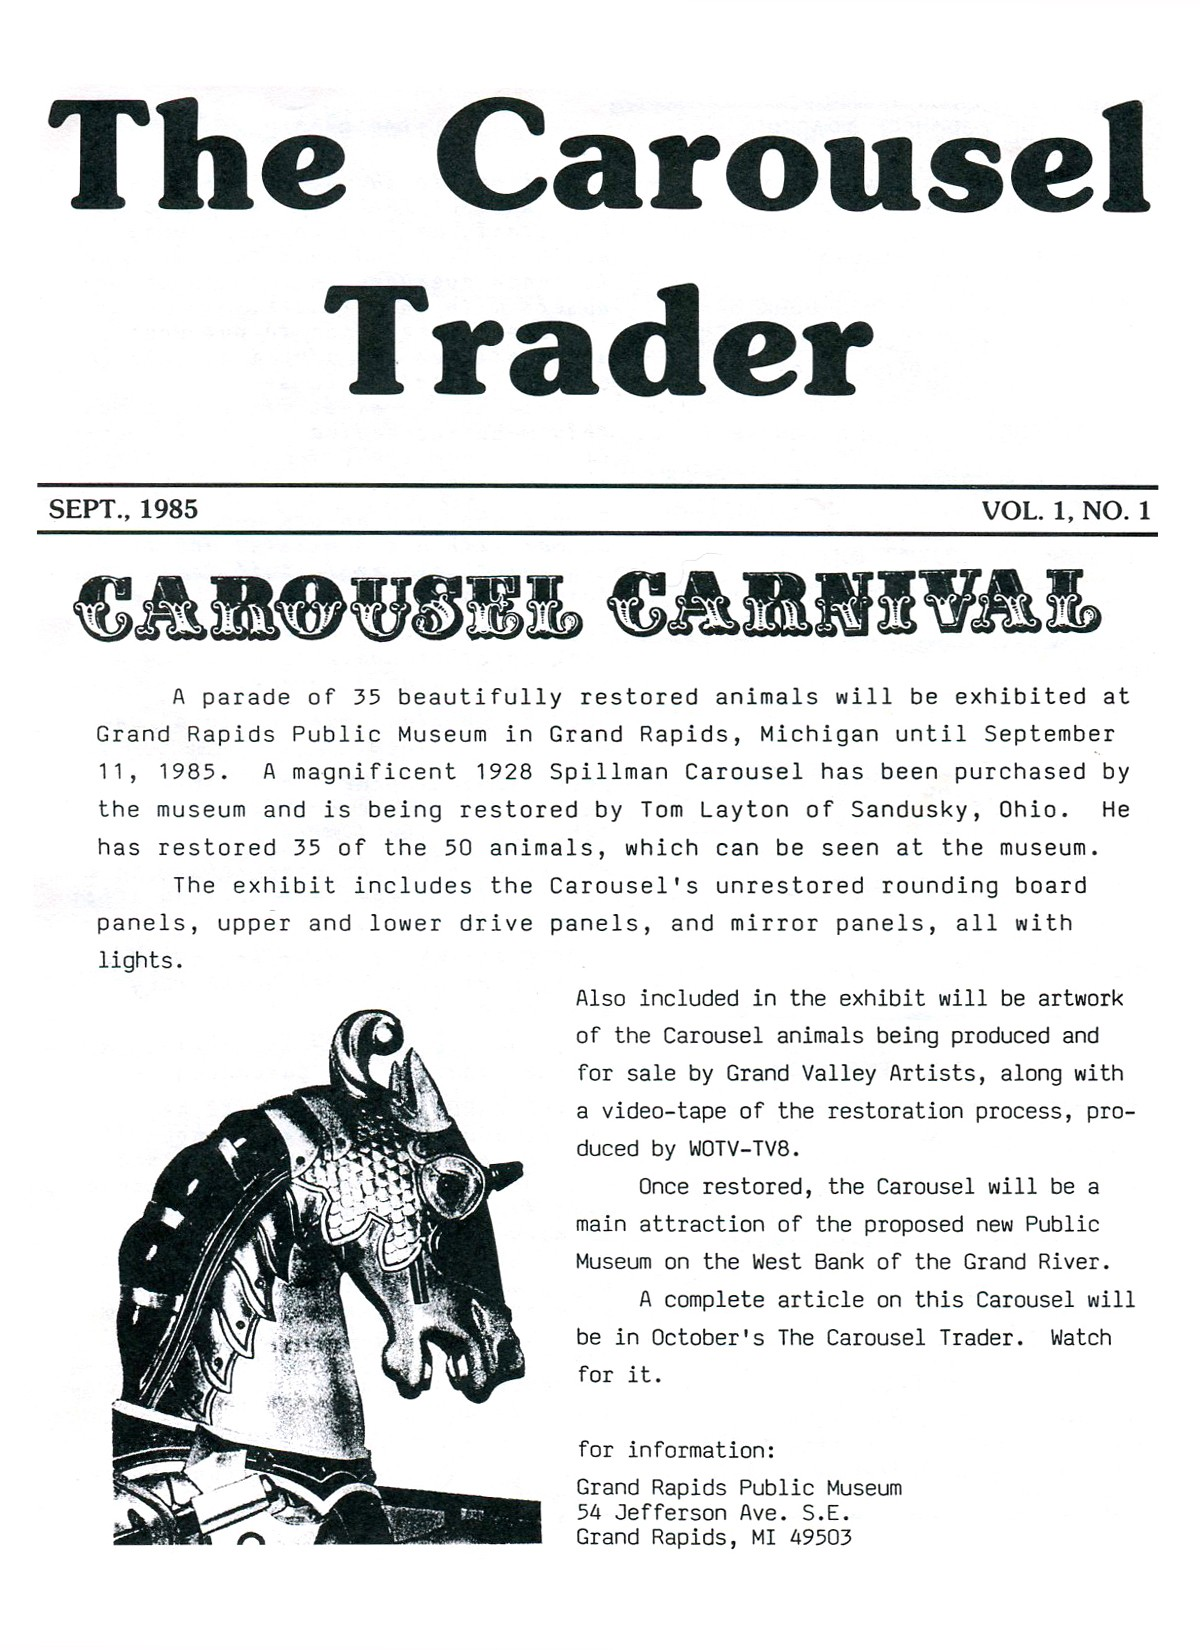 Carousel-news-cover-v1n1-first-issue-Grand-Rapids-Spillman-carousel-horse-Sep-85